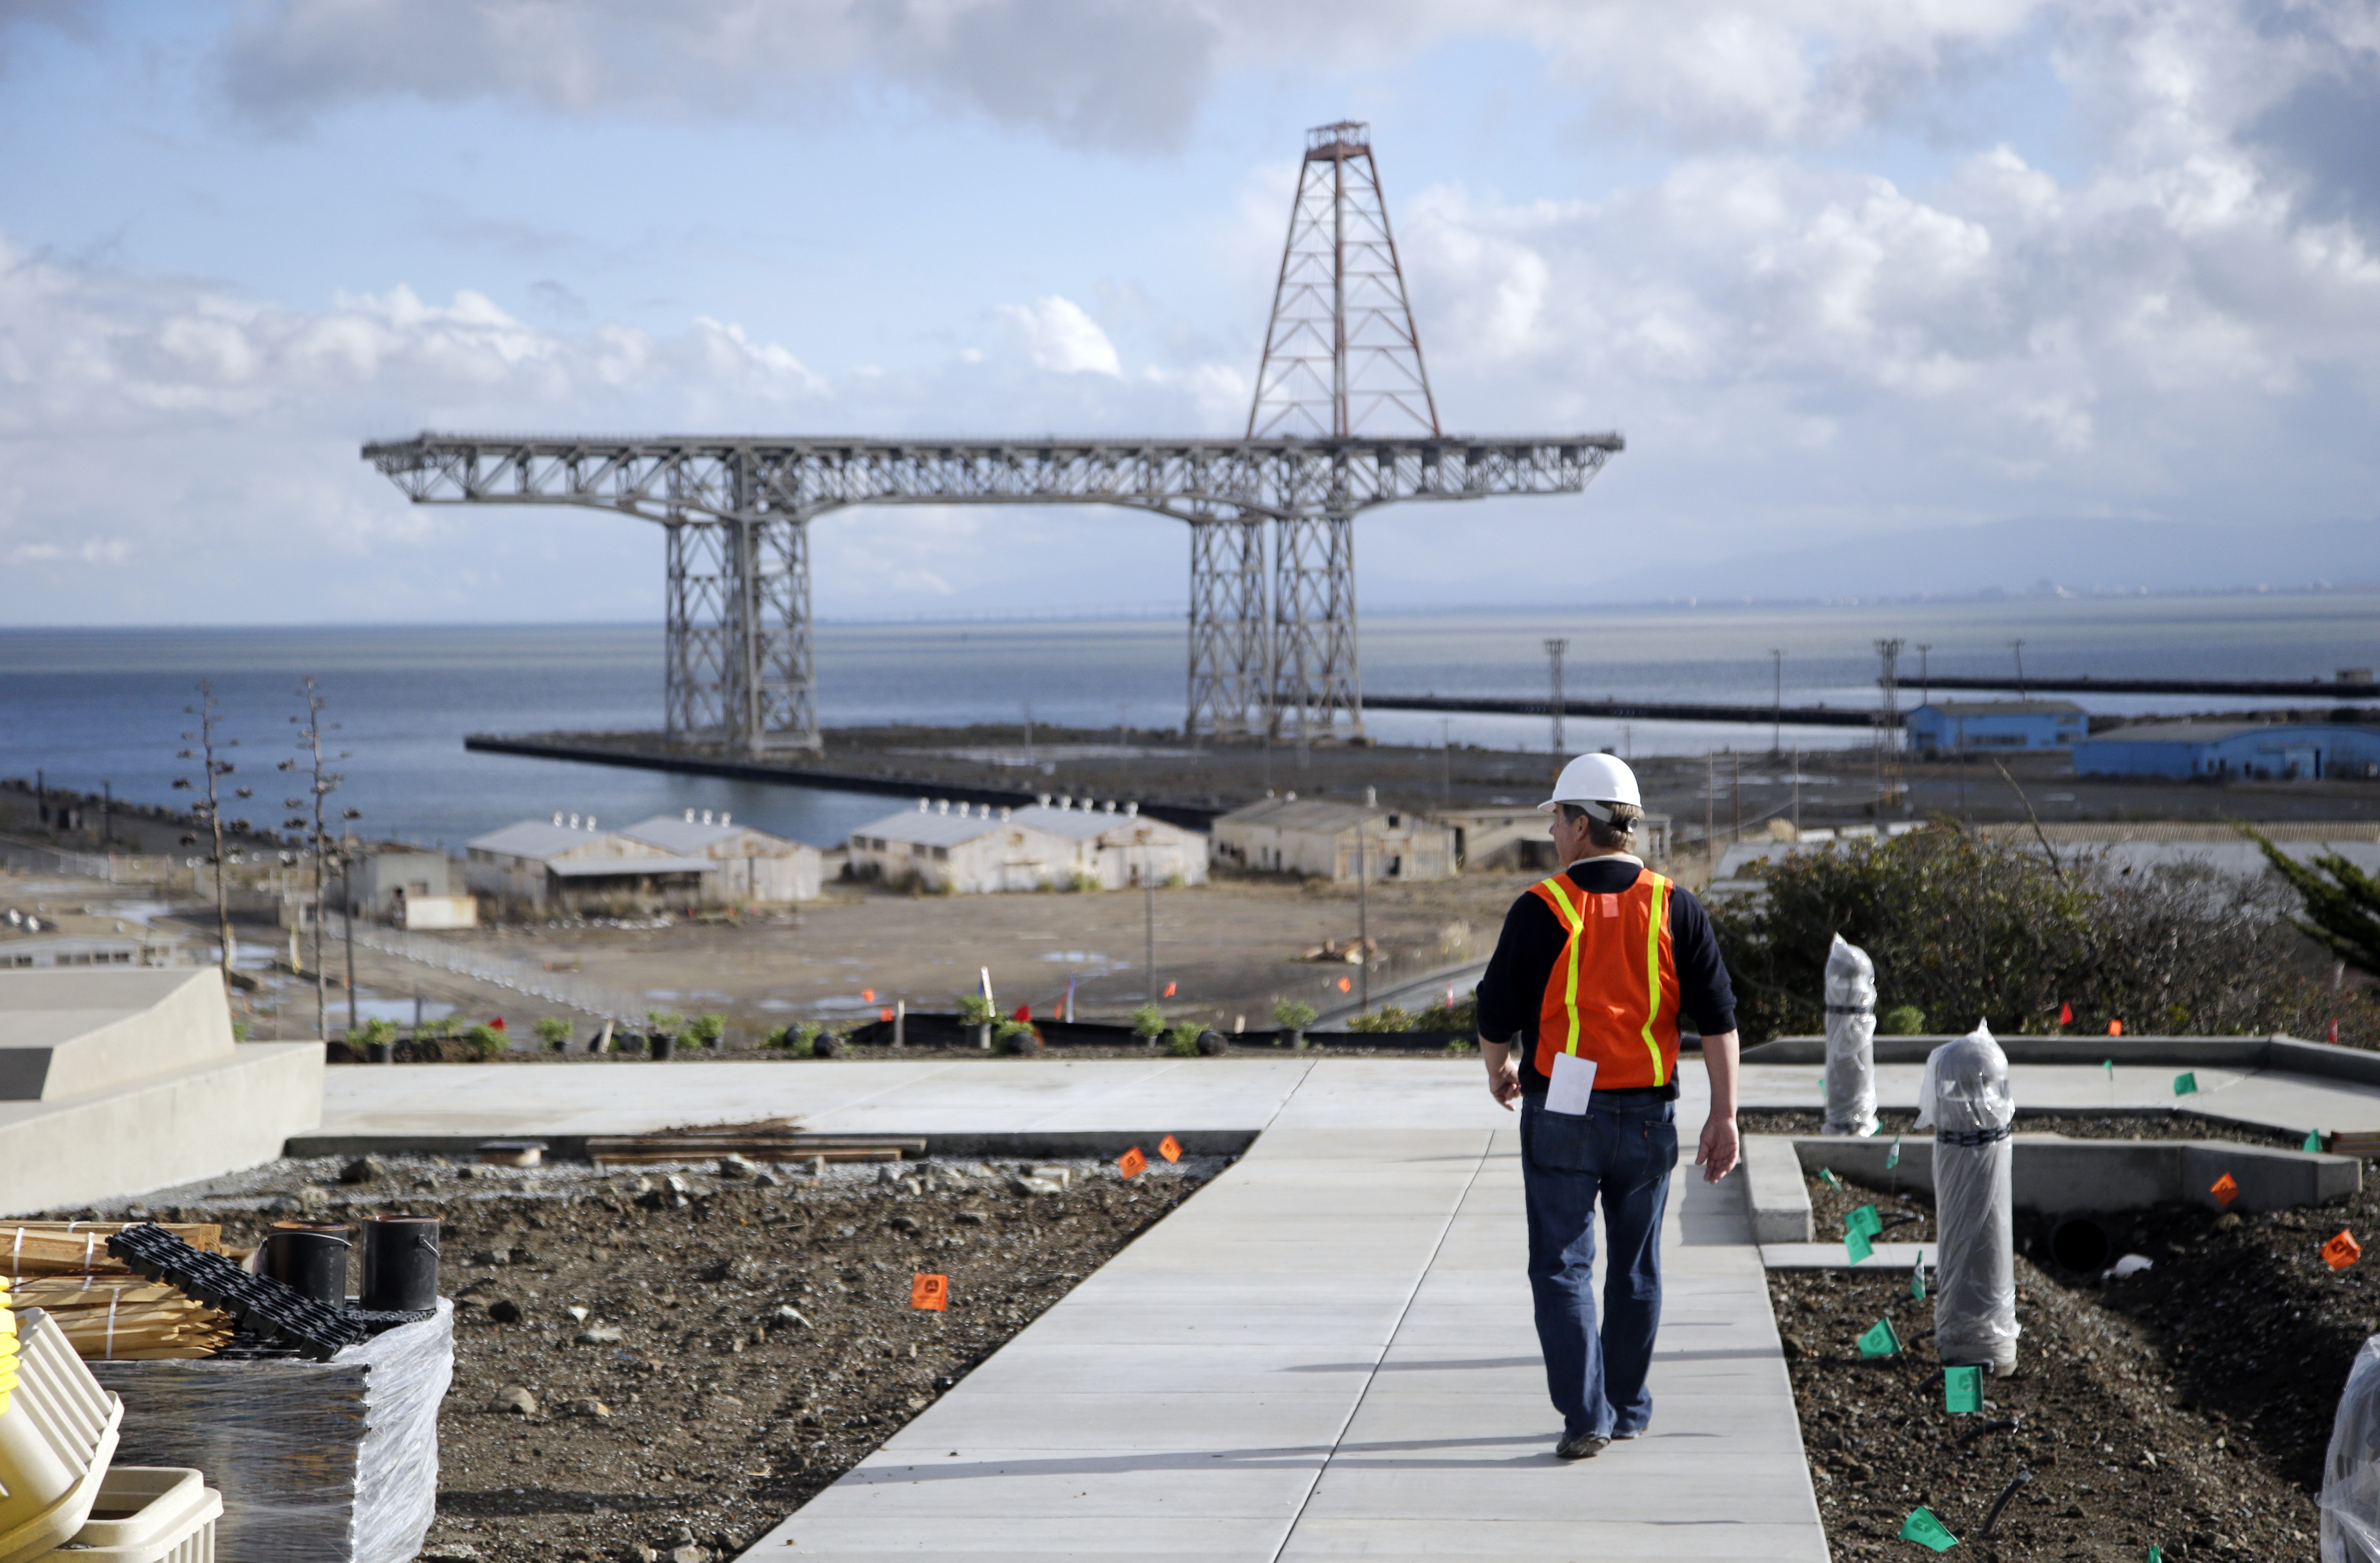 With the area's historic shipyard in the background, David Satterfield, spokesman for lead developer Lennar Urban, walks the grounds of the new San Francisco Shipyard homes development in the Bayview Hunters Point district